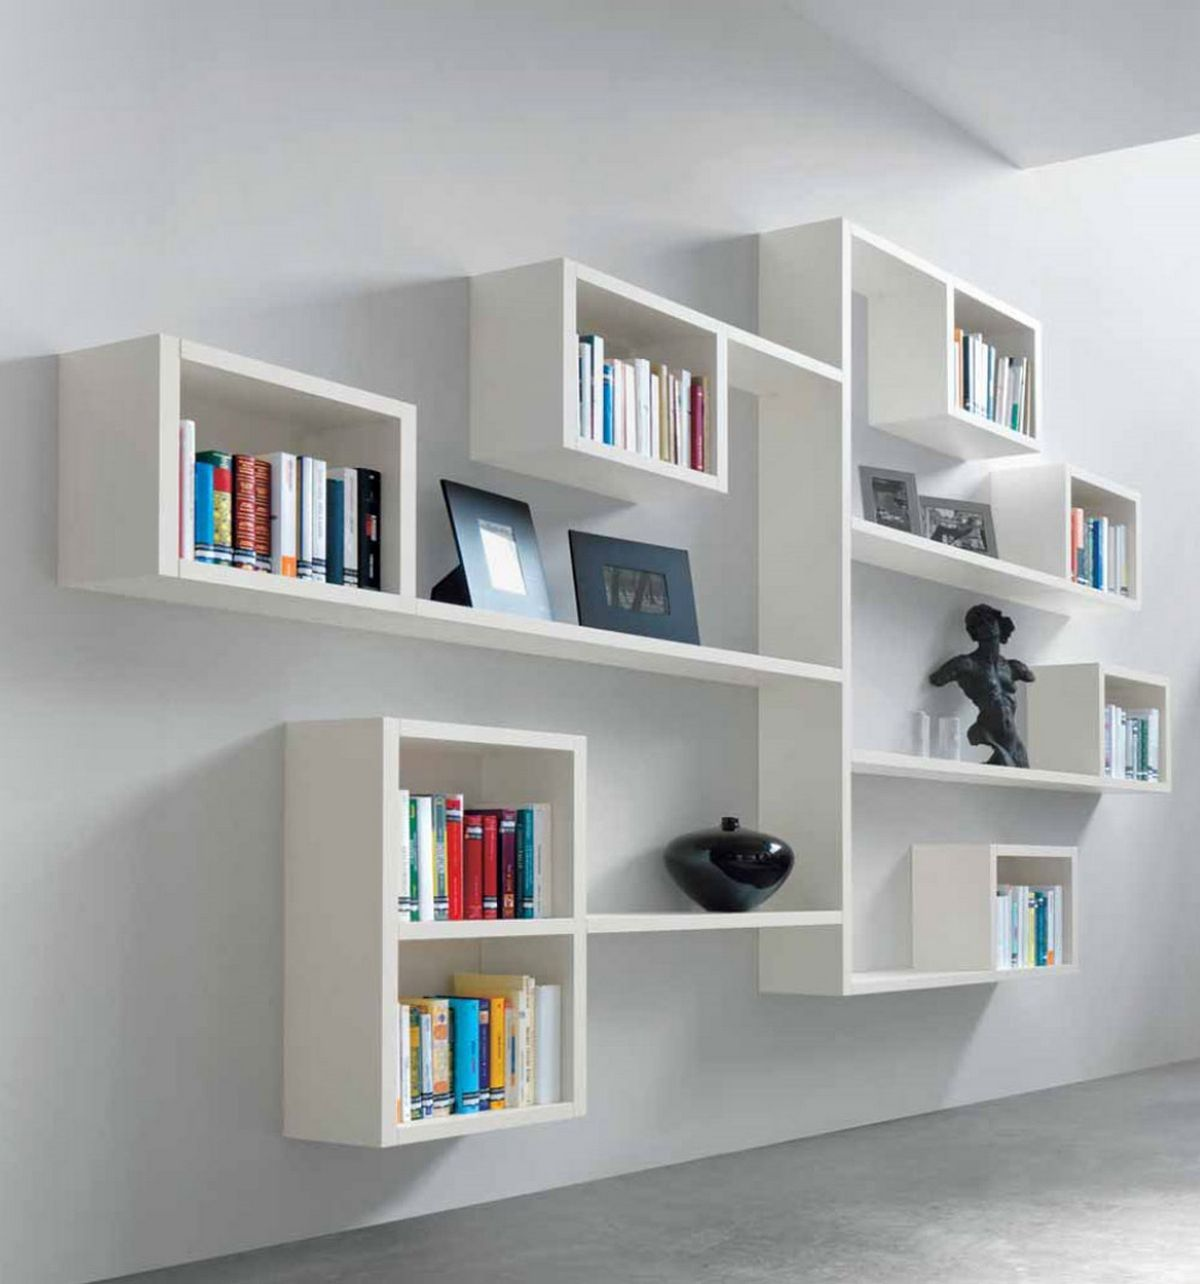 Pristine White Bookshelves Elegant 26 Of The Most Creative Bookshelves Designs White Bookshelves For Wa Bookshelf Design Creative Bookshelves Modern Wall Shelf